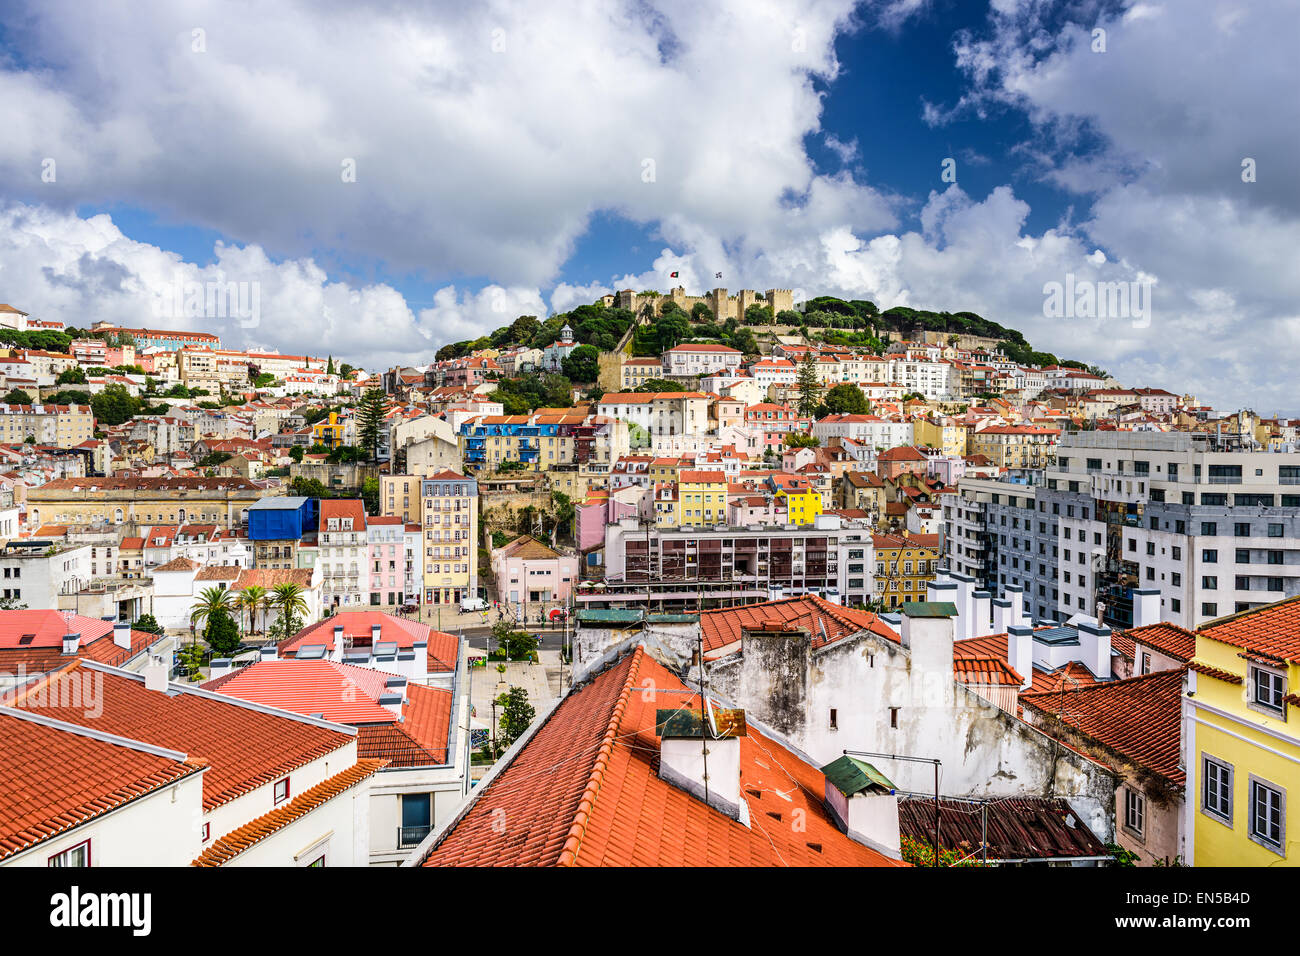 Lisbon, Portugal cityscape towards Sao Jorge Castle. - Stock Image